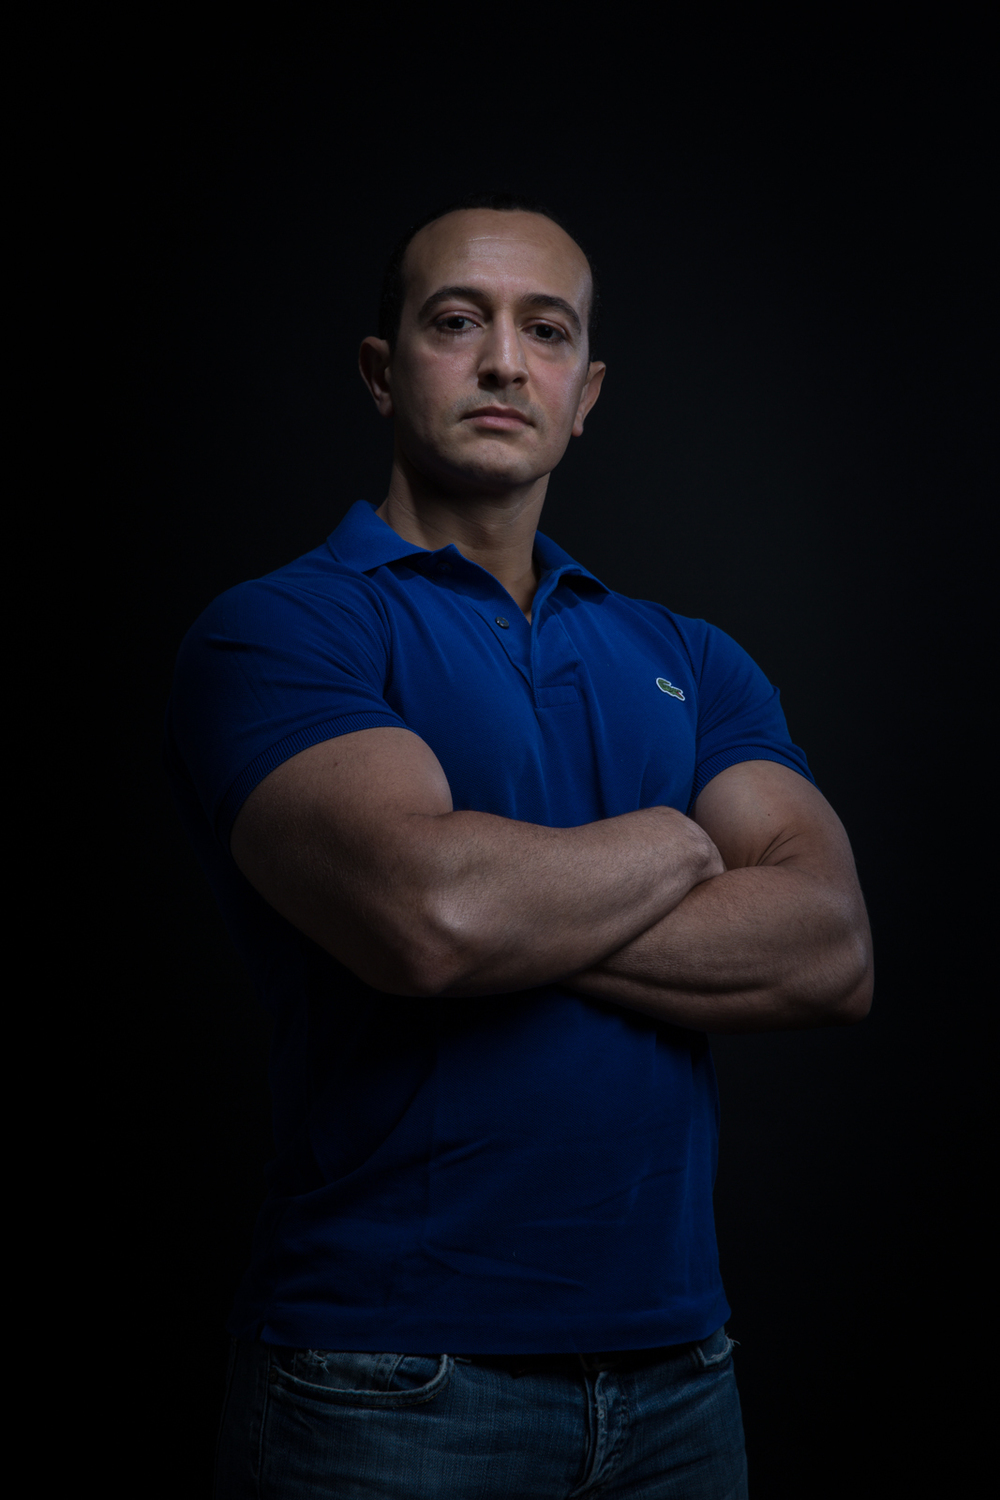 Personal Trainer Portrait Photography